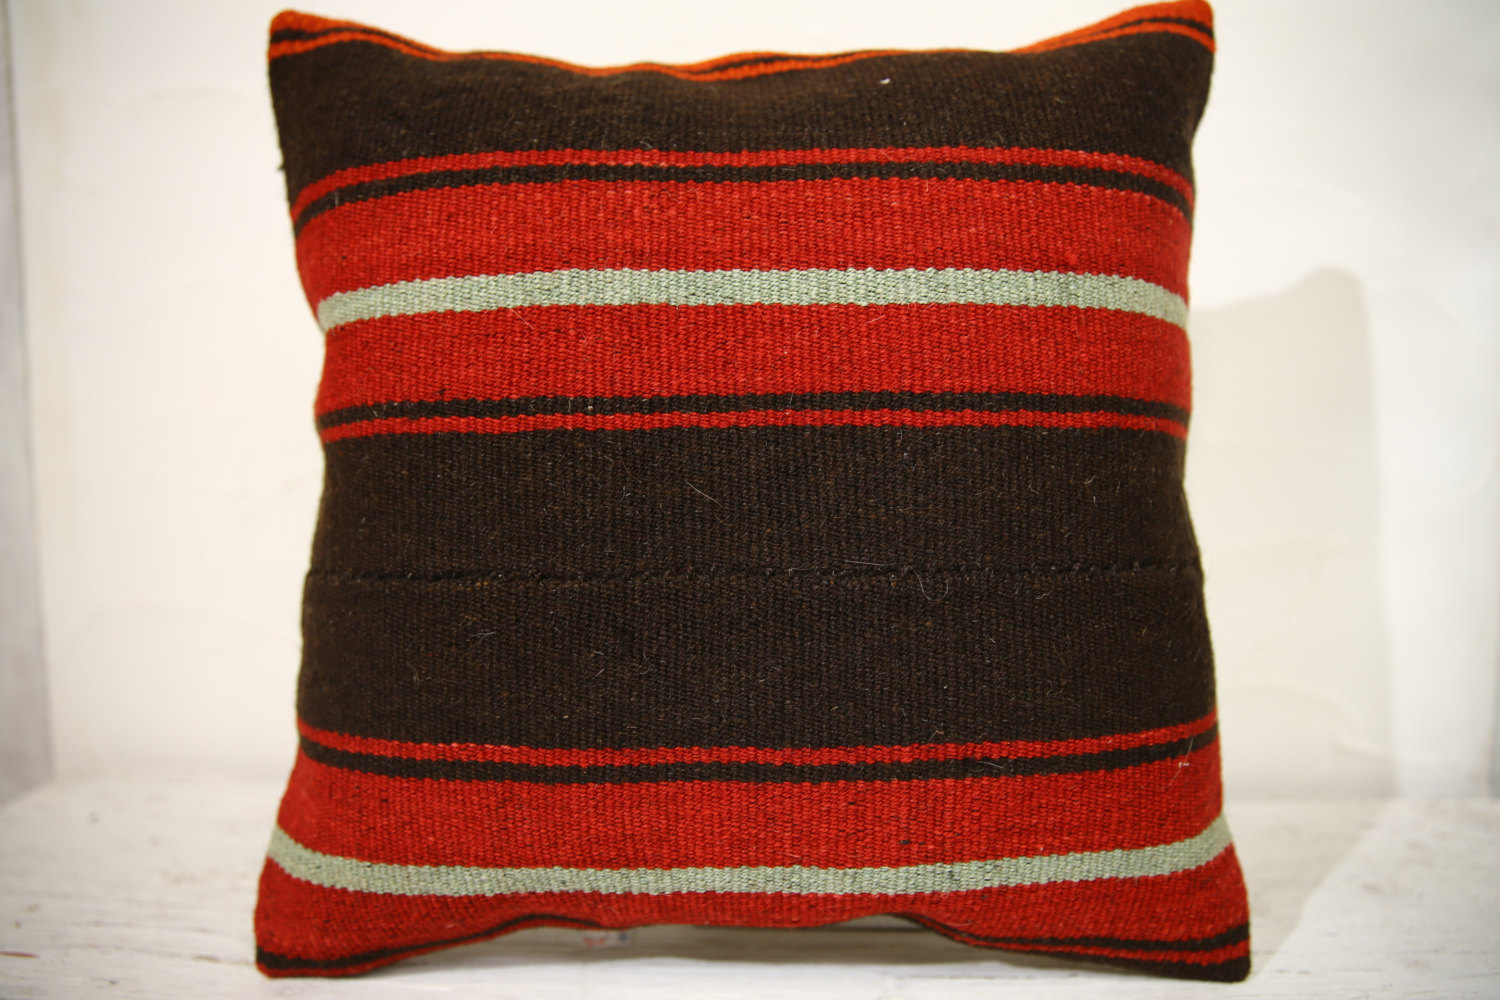 Kilim Pillows | 16x16 | Decorative Pillows | 908 | Accent Pillows,turkish pillow